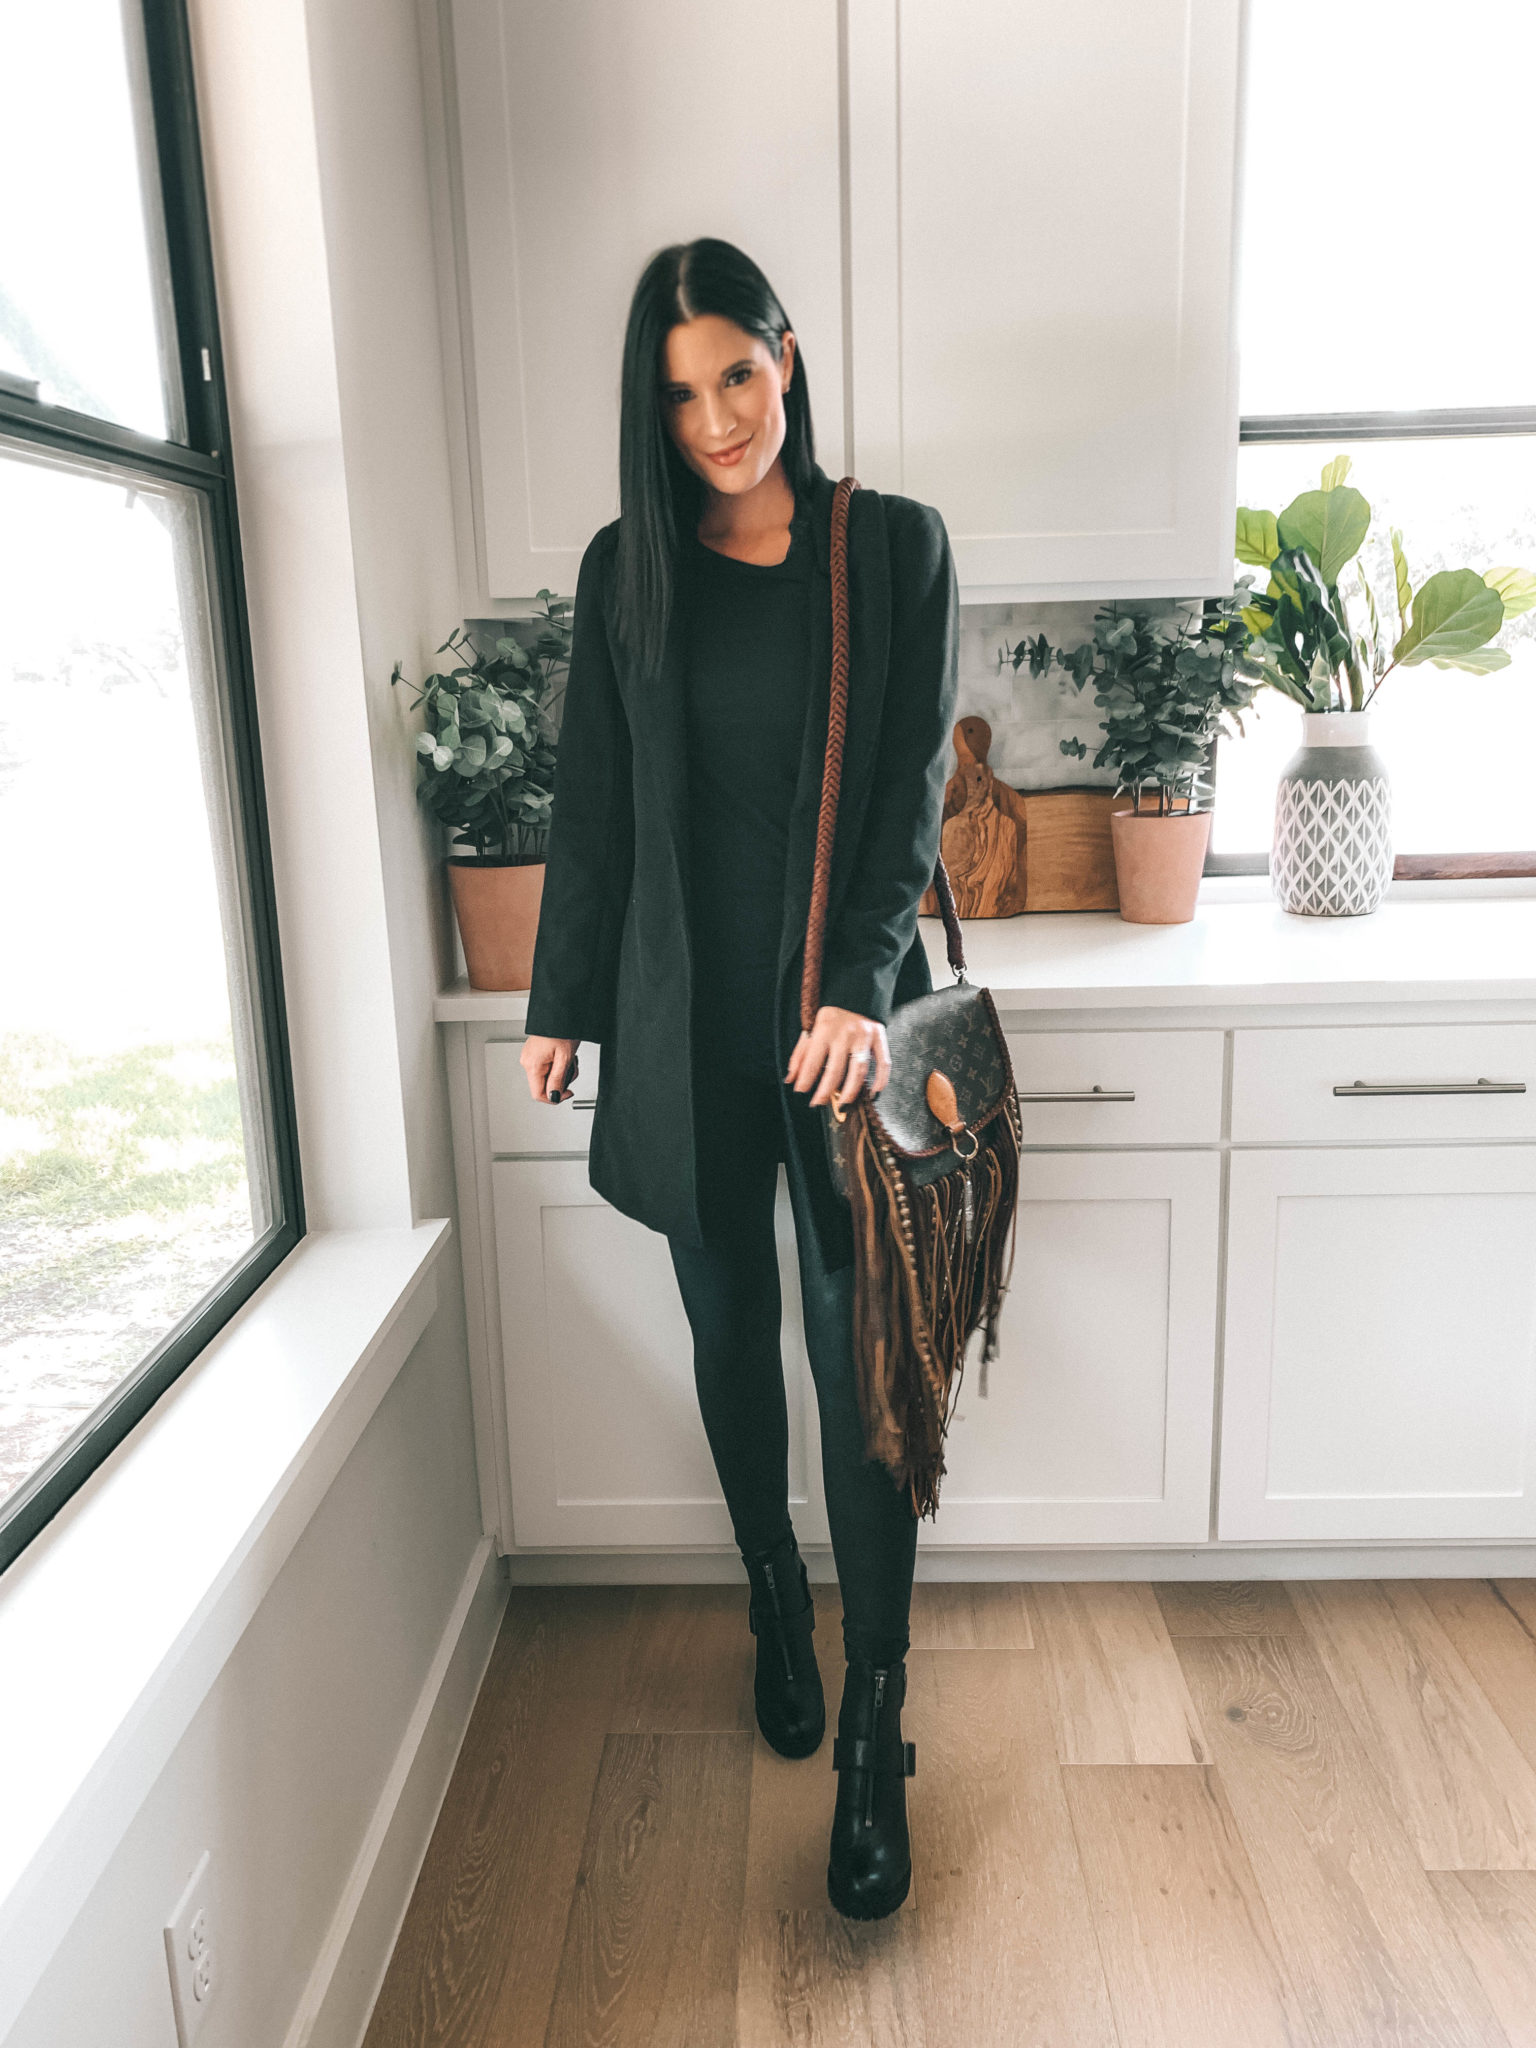 How to Style an All Black Outfit 3 Different Ways by popular Austin blog, Dressed to Kill: image of woman standing in her kitchen and wearing a black Halogen Double Face Coat, black Spanx Faux Leather Leggings, and carrying a World Traveler Dirty Blonde purse.